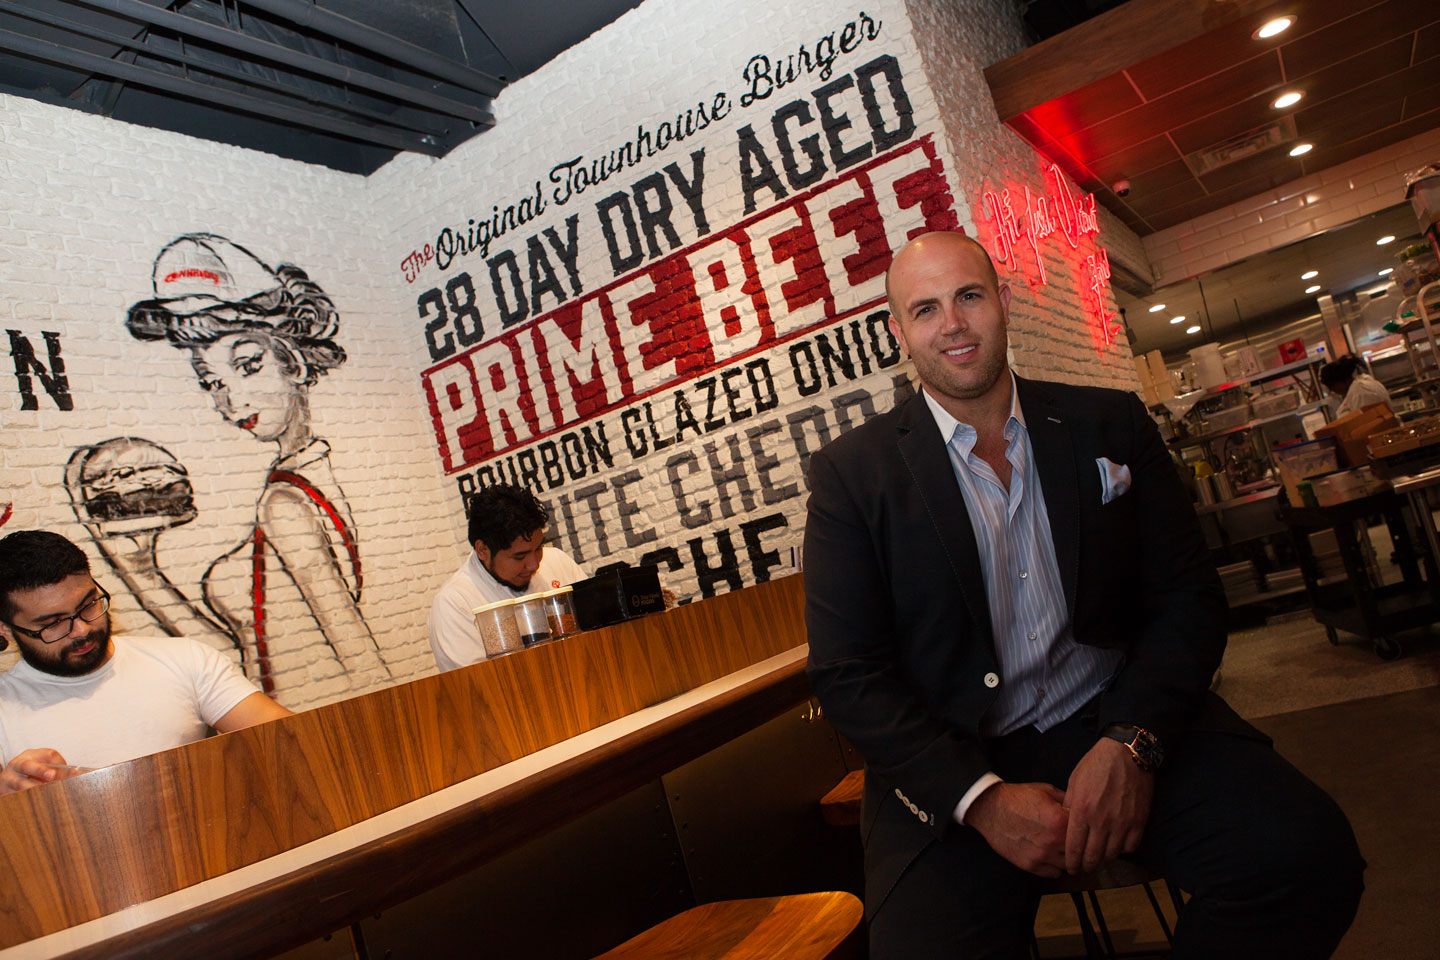 Jeremy Sasson, restaurateur behind Townhouse